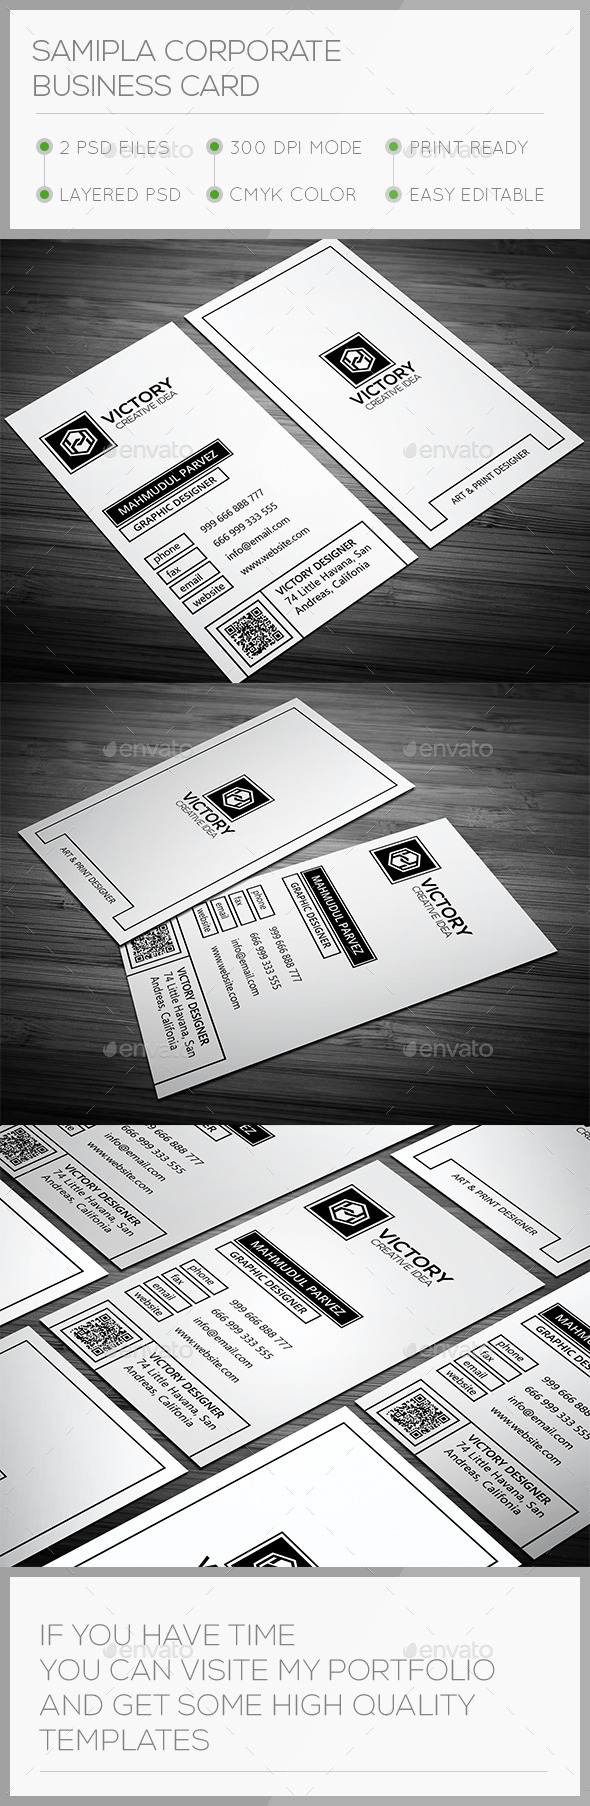 Samipla Corporate Business Card - Corporate Business Cards